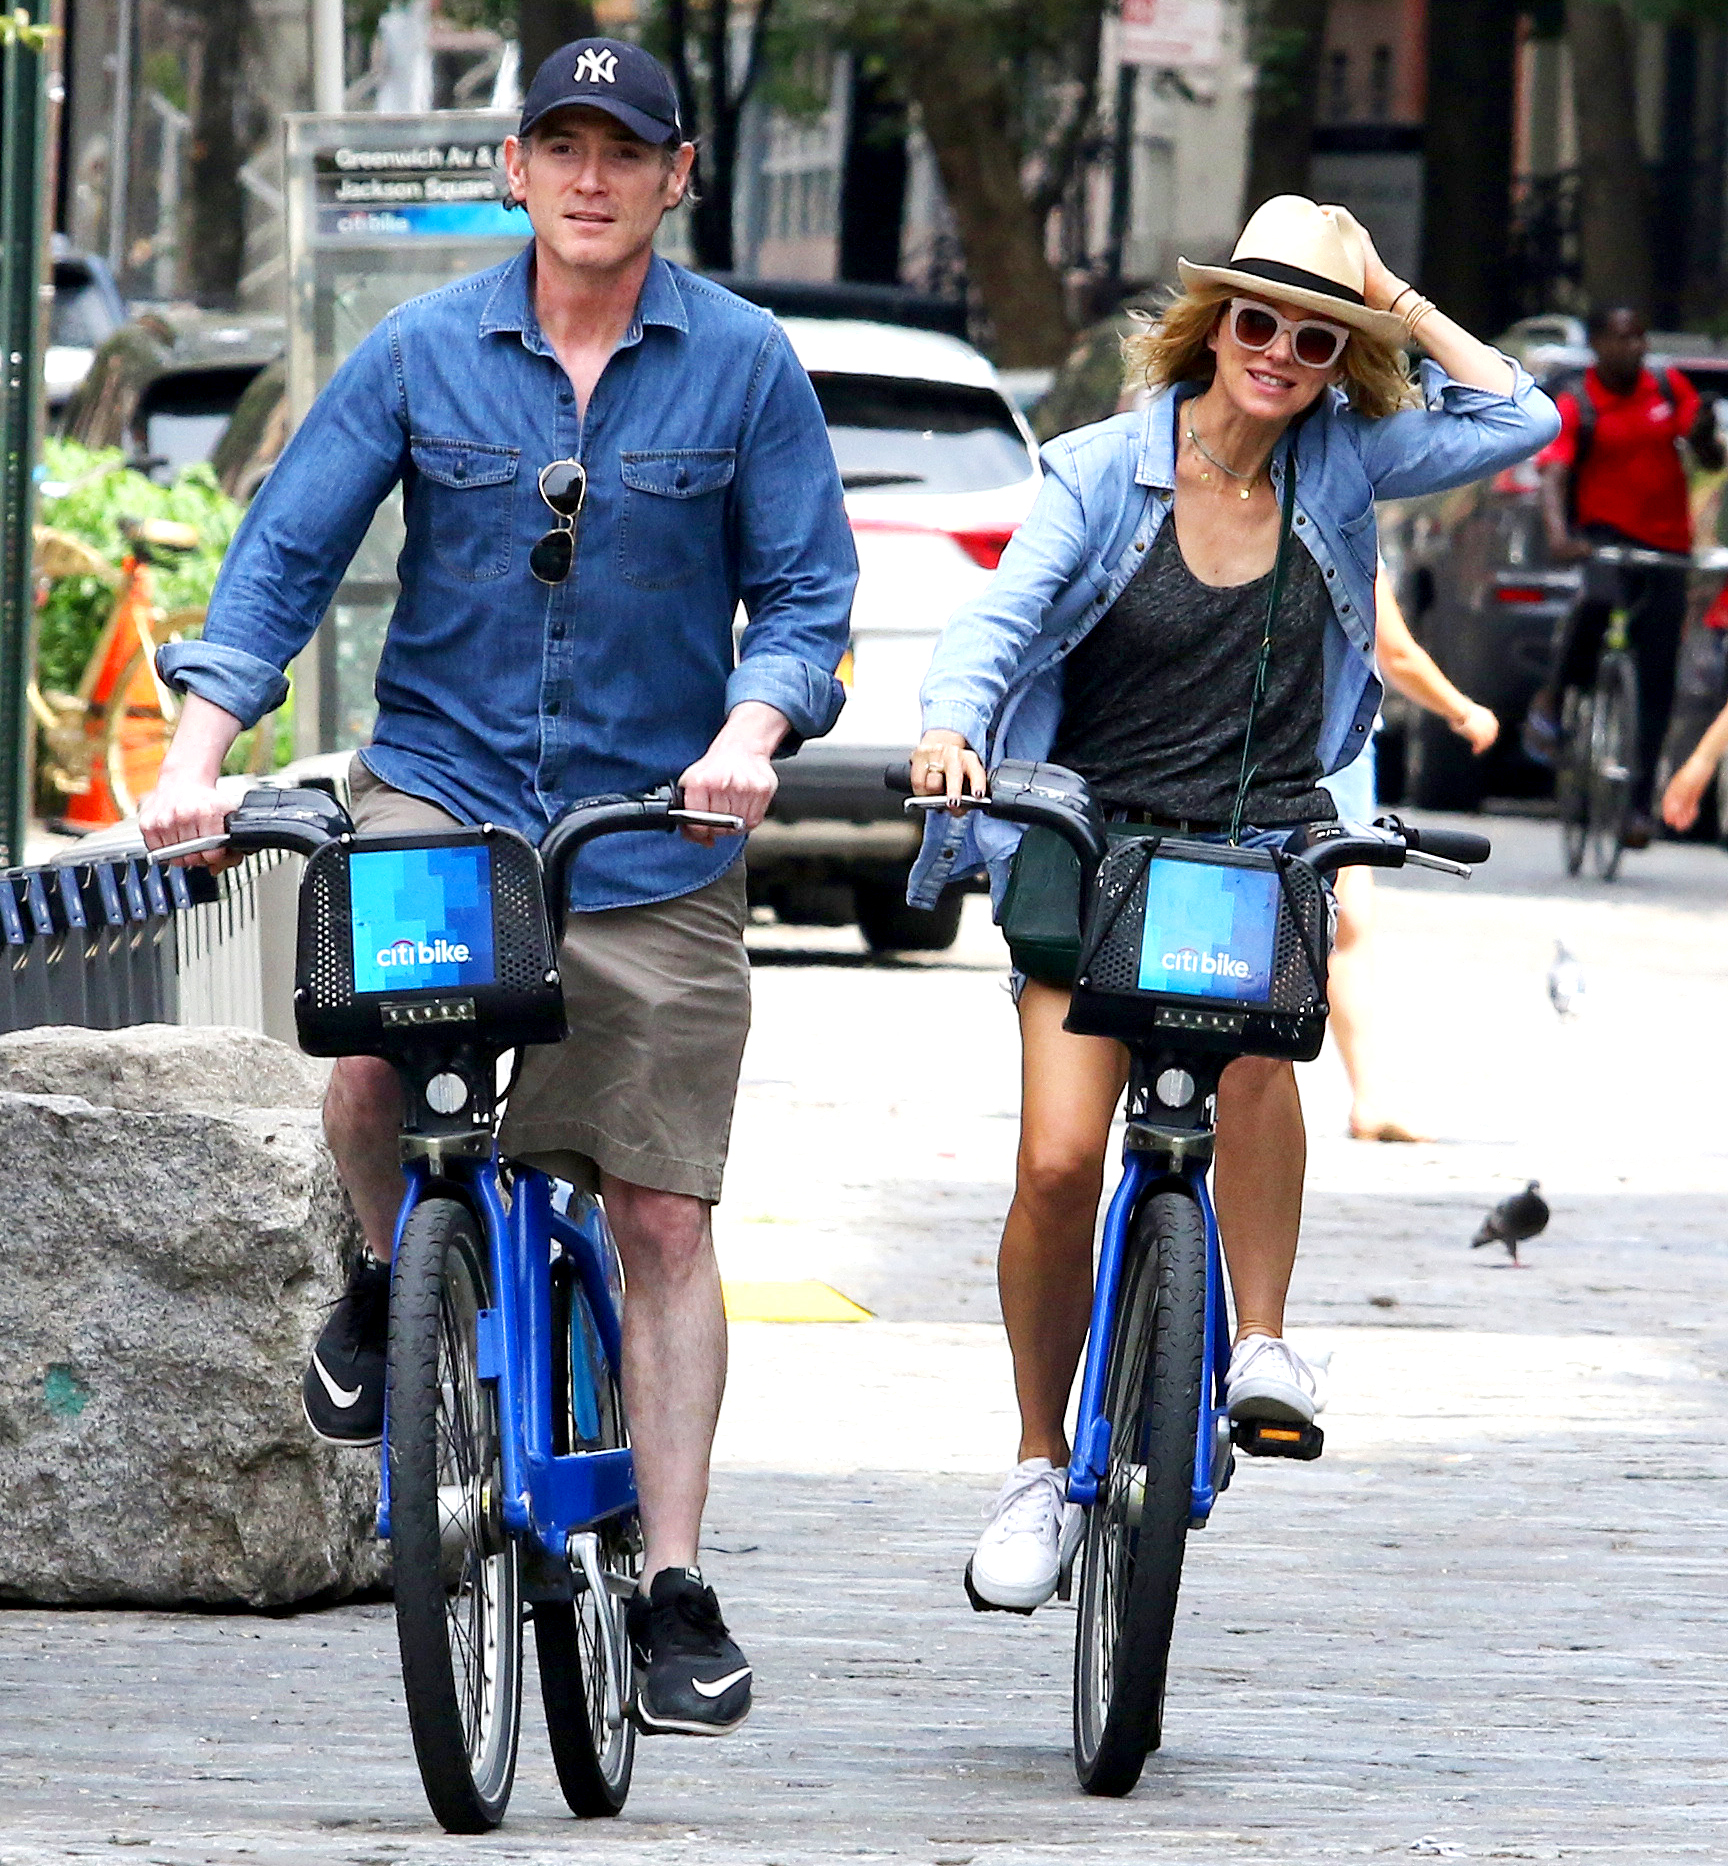 Naomi-Watts-and-Billy-Crudup-biking - The actors — who began dating after costarring in Netflix's 2017 show Gypsy — rode through NYC's West Village neighborhood after a lunch date on August 25, 2018.